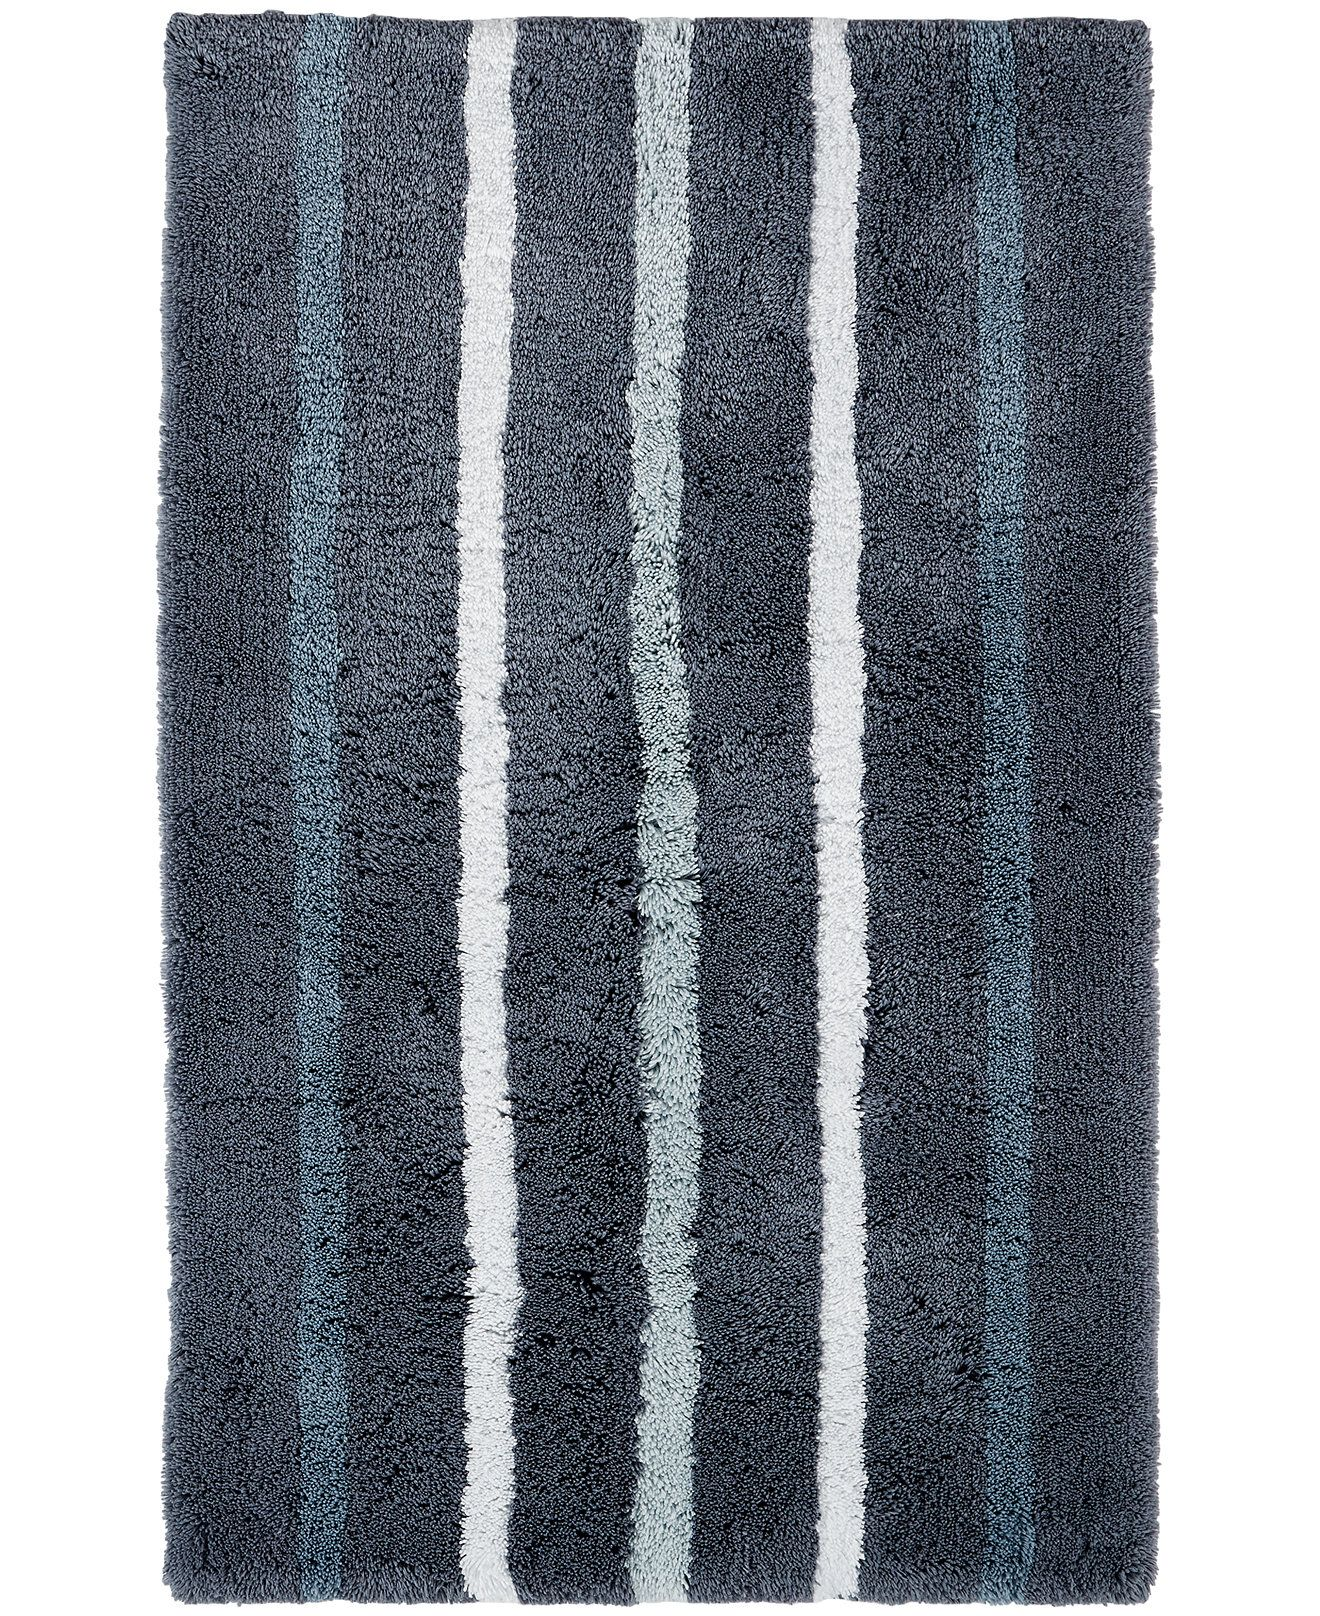 Hotel Collection Fashion Contrast Striped Rugs Bath Rugs